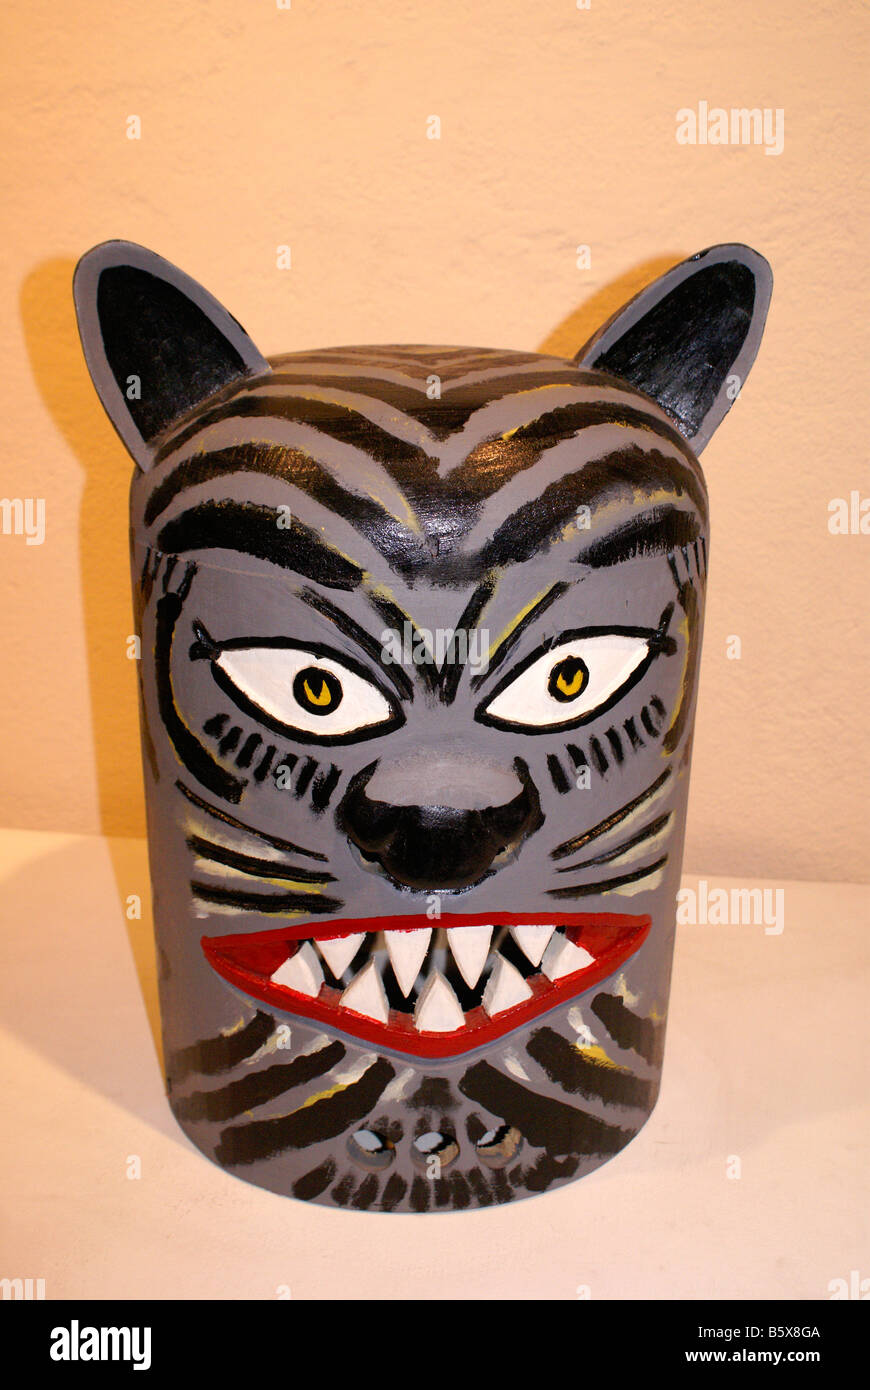 ceremonial-jaguar-or-tiger-mask-in-the-m